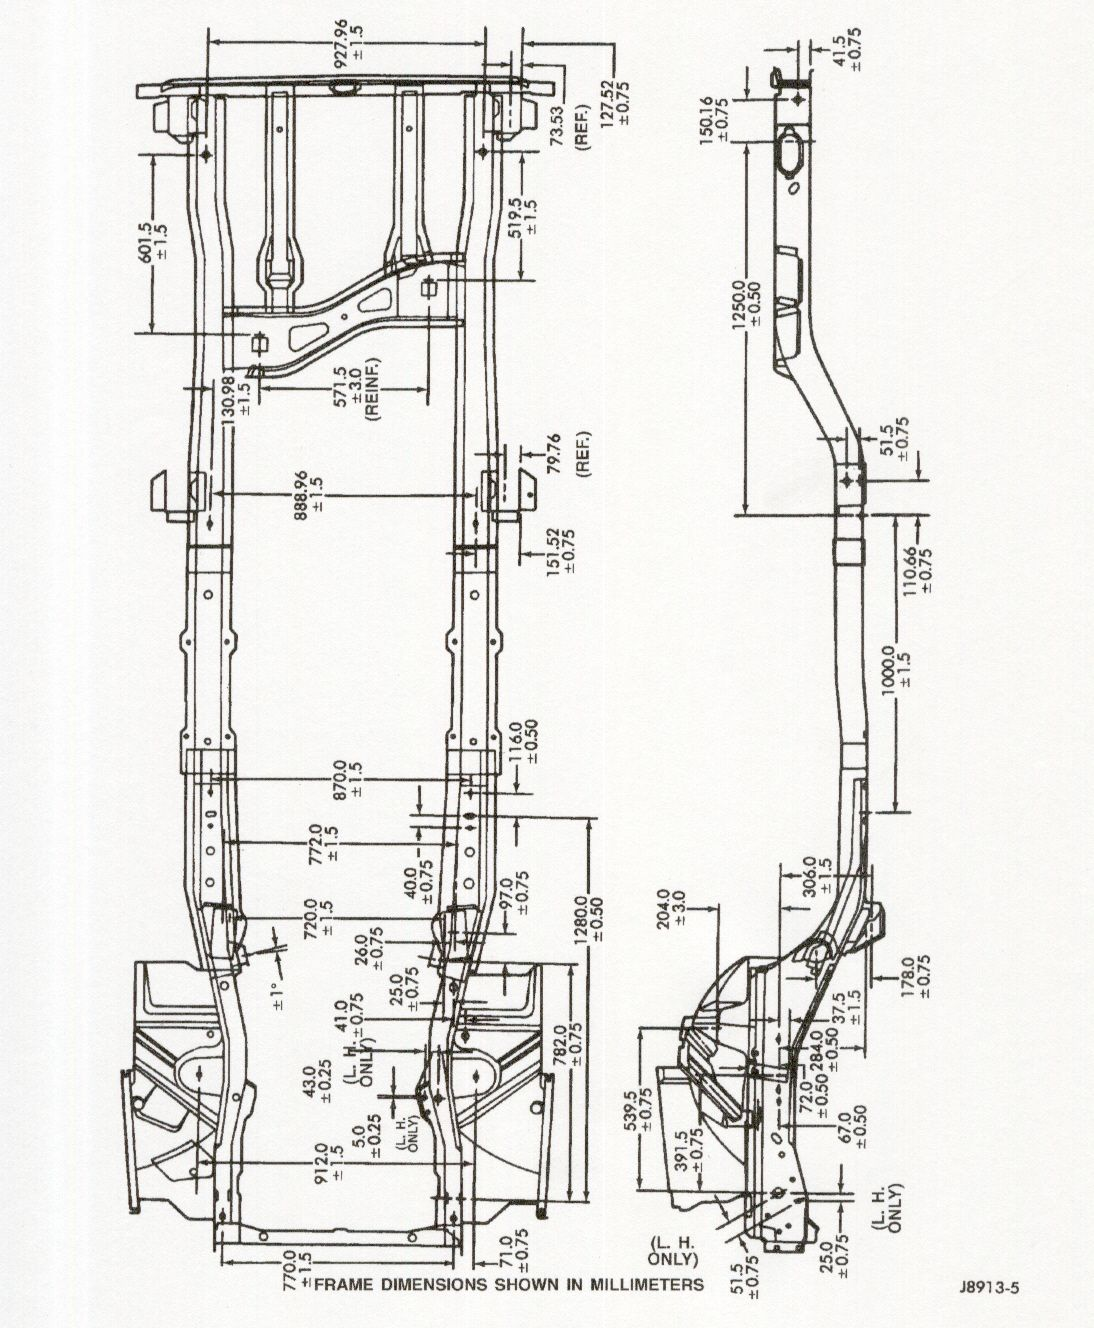 Xj Frame Drawing Cherokee Jeep. Xj Frame Drawing Jeep Mods Cj7 Wrangler Willys Mb. Jeep. 2005 Jeep Liberty Front Frame Diagram At Scoala.co